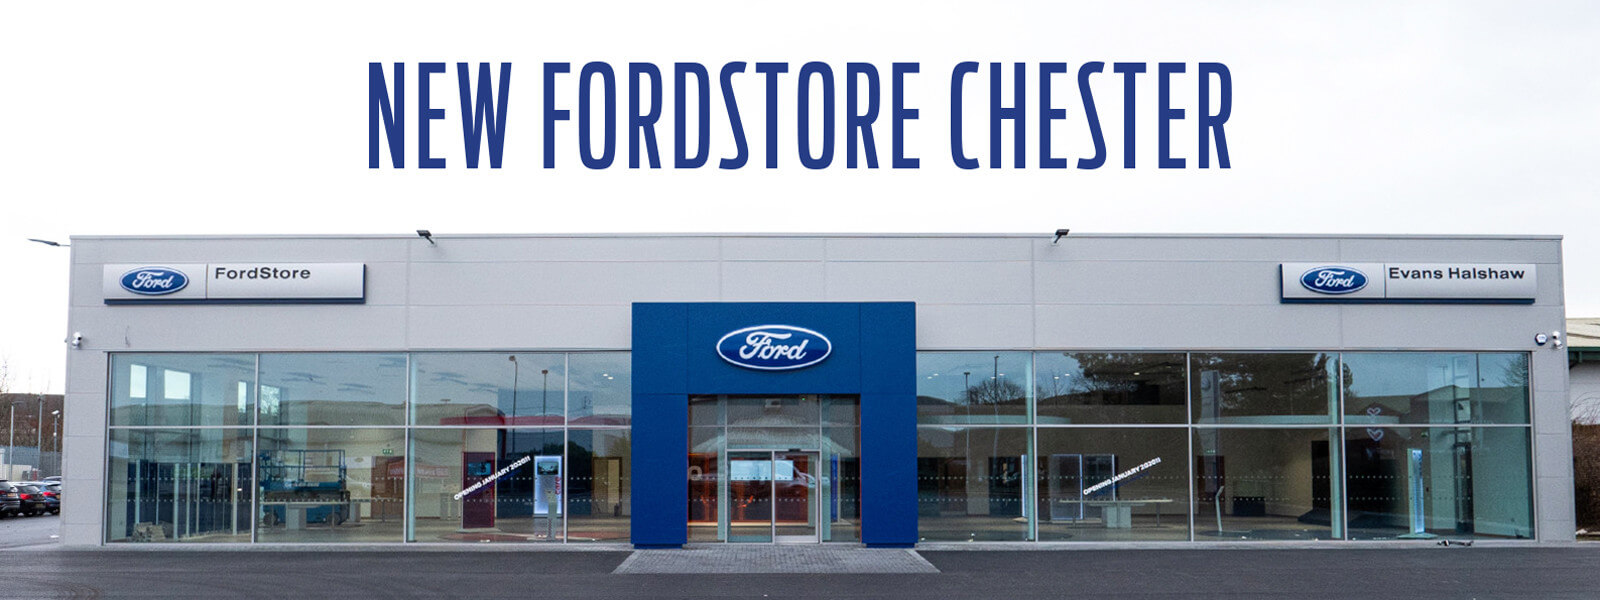 New Evans Halshaw FordStore Chester